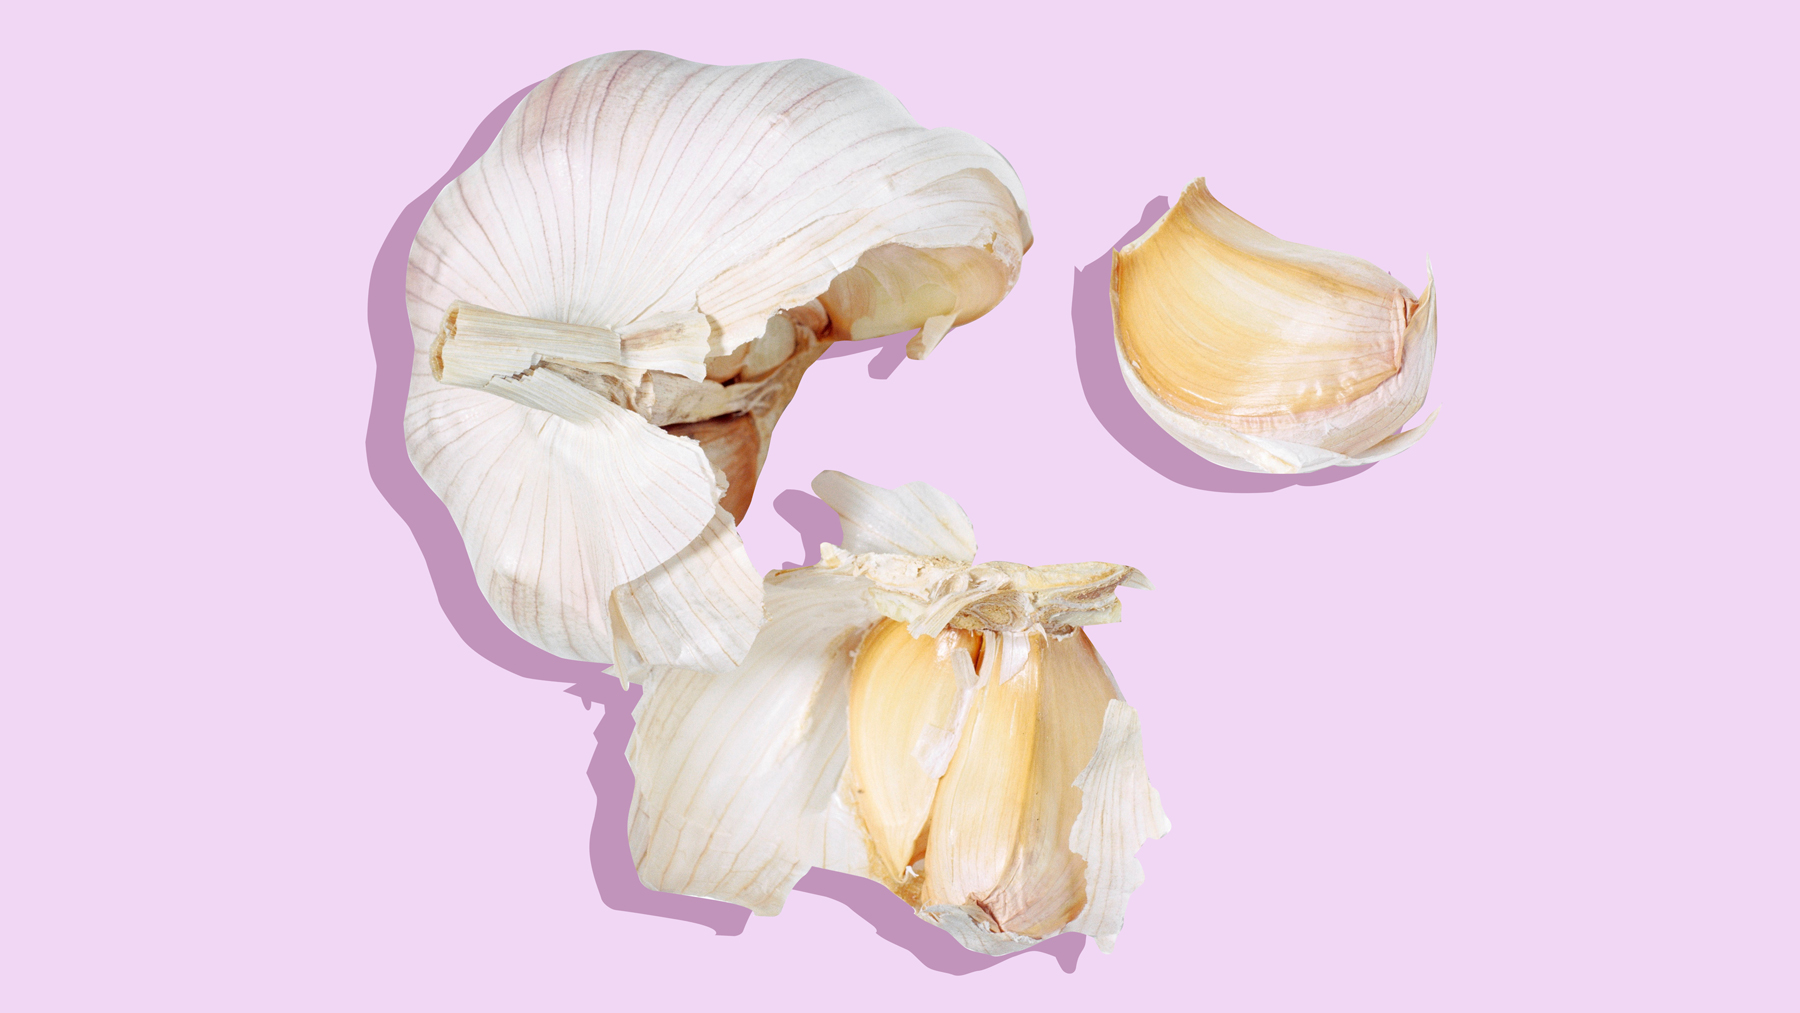 How to peel garlic, how to chop garlic, how to cut garlic, and how to mince garlic